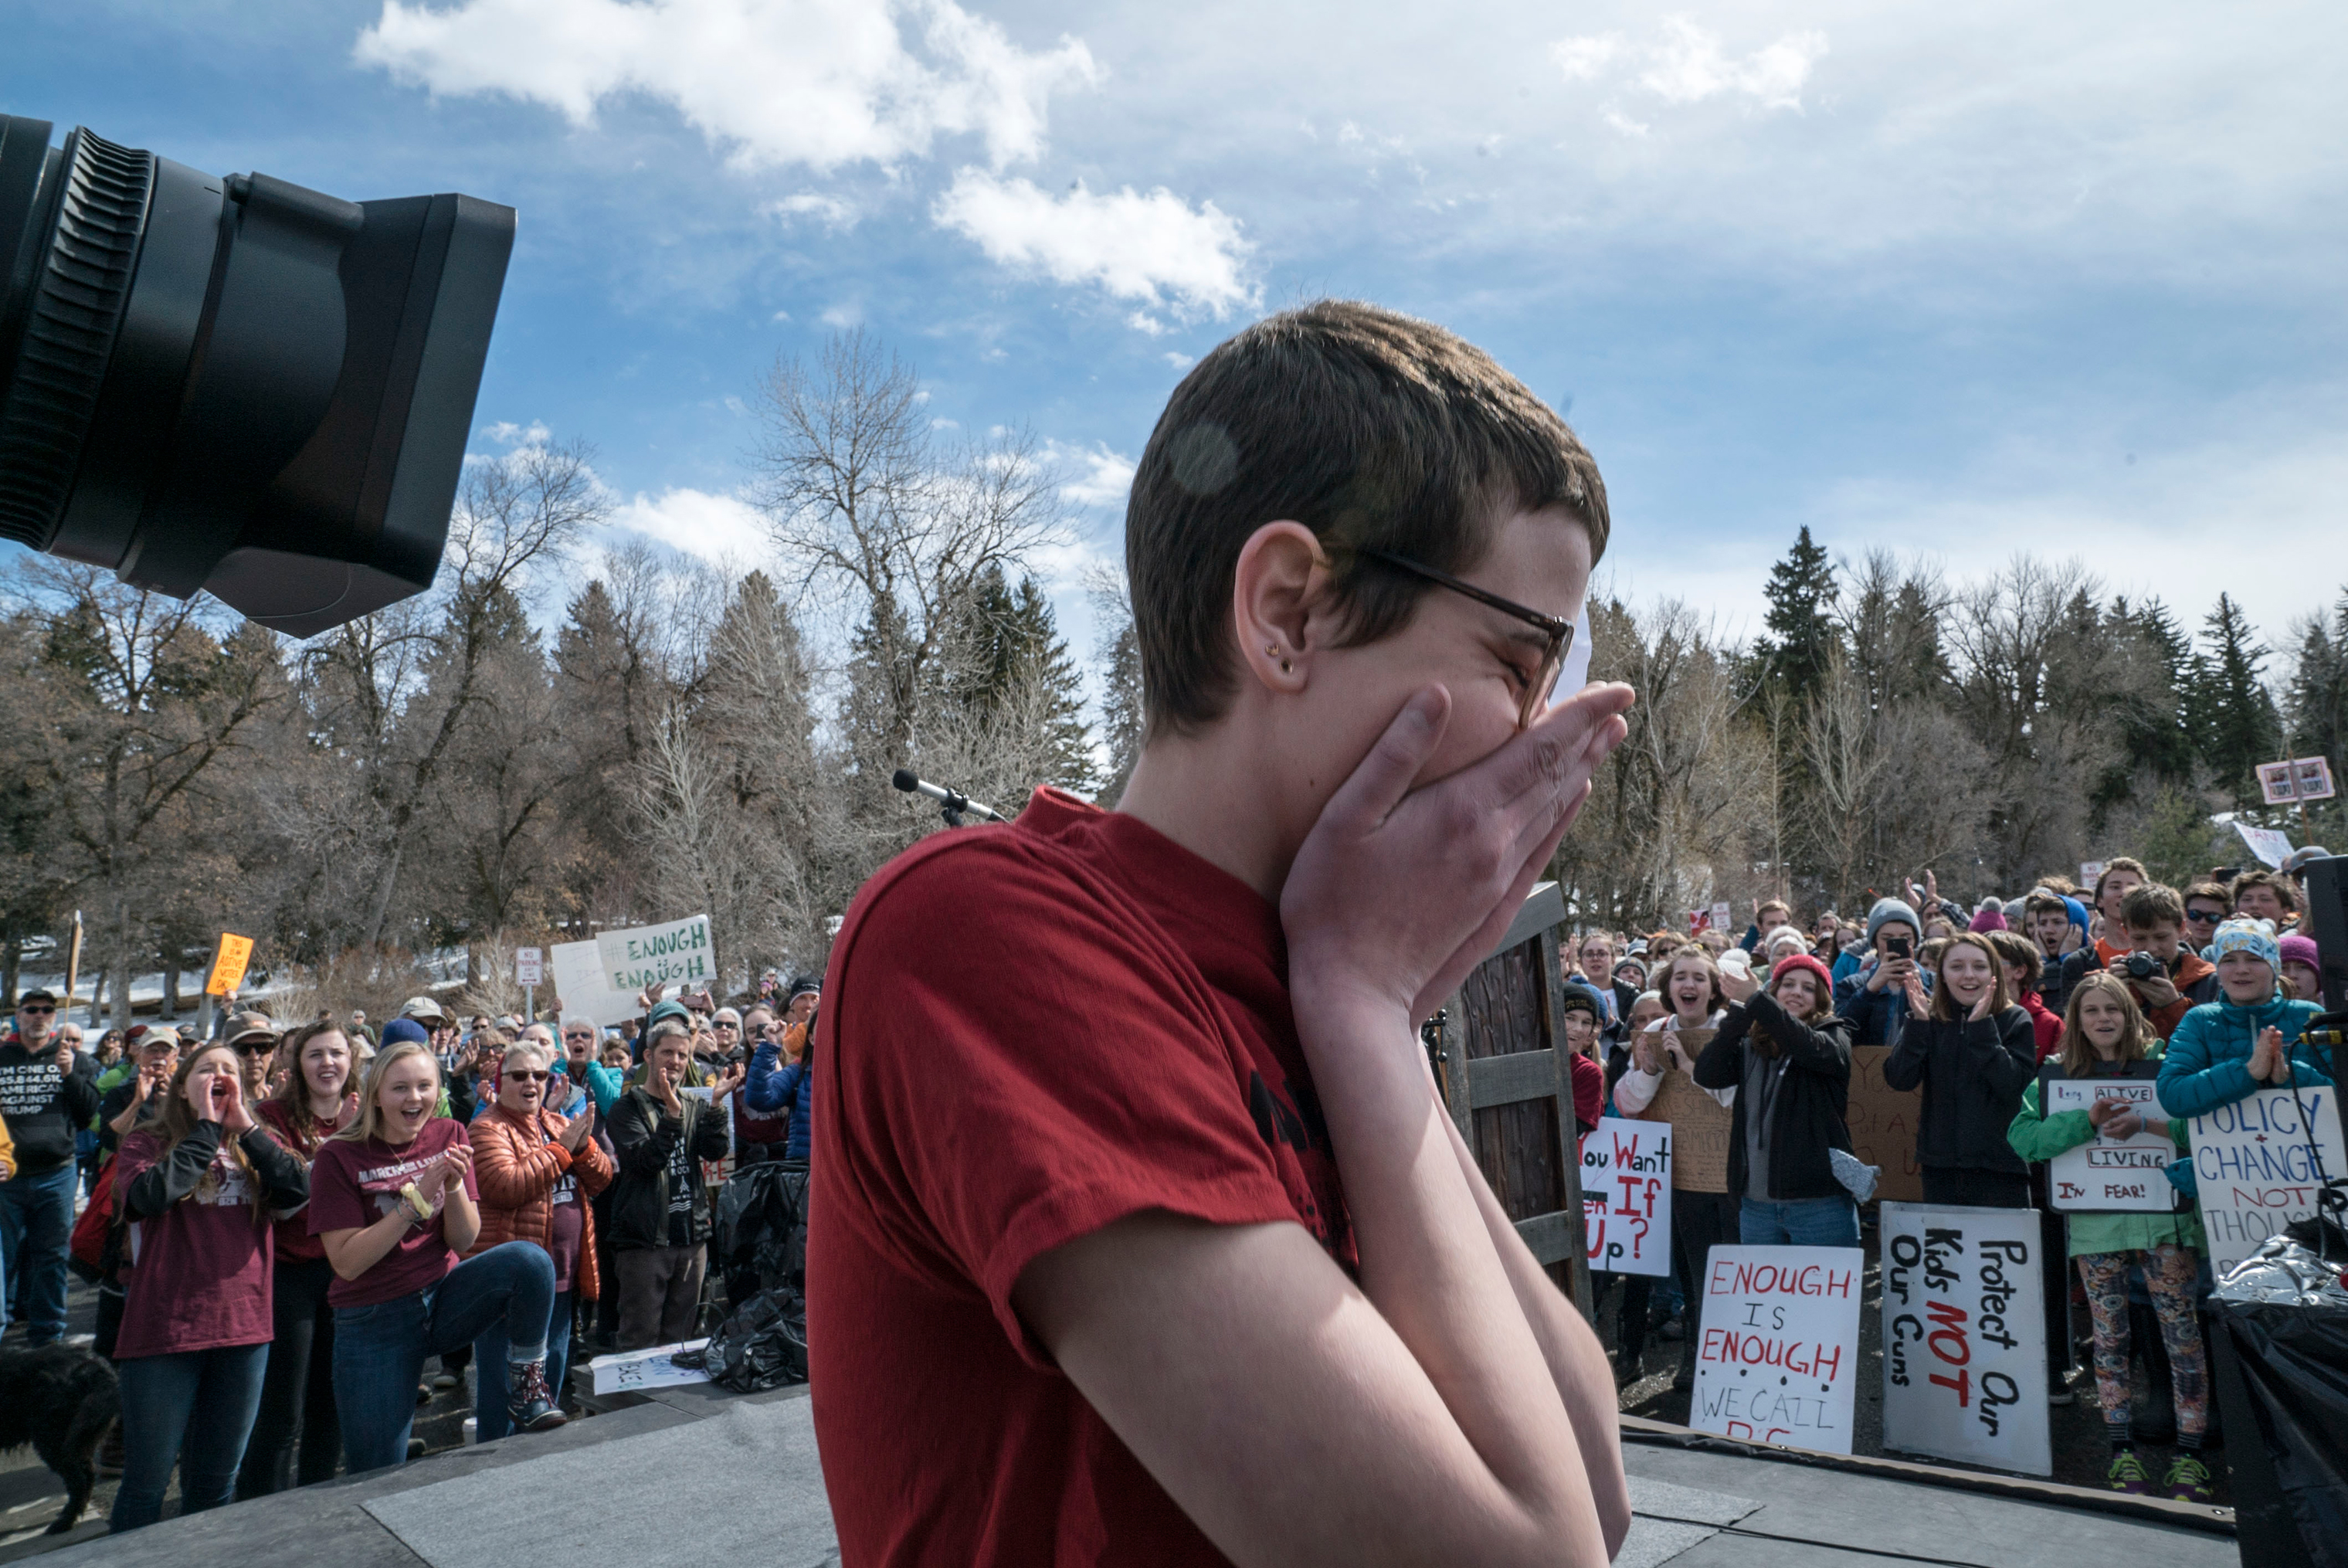 Bozeman High School freshman Timea Laatsch became emotional after speaking to the crowd.